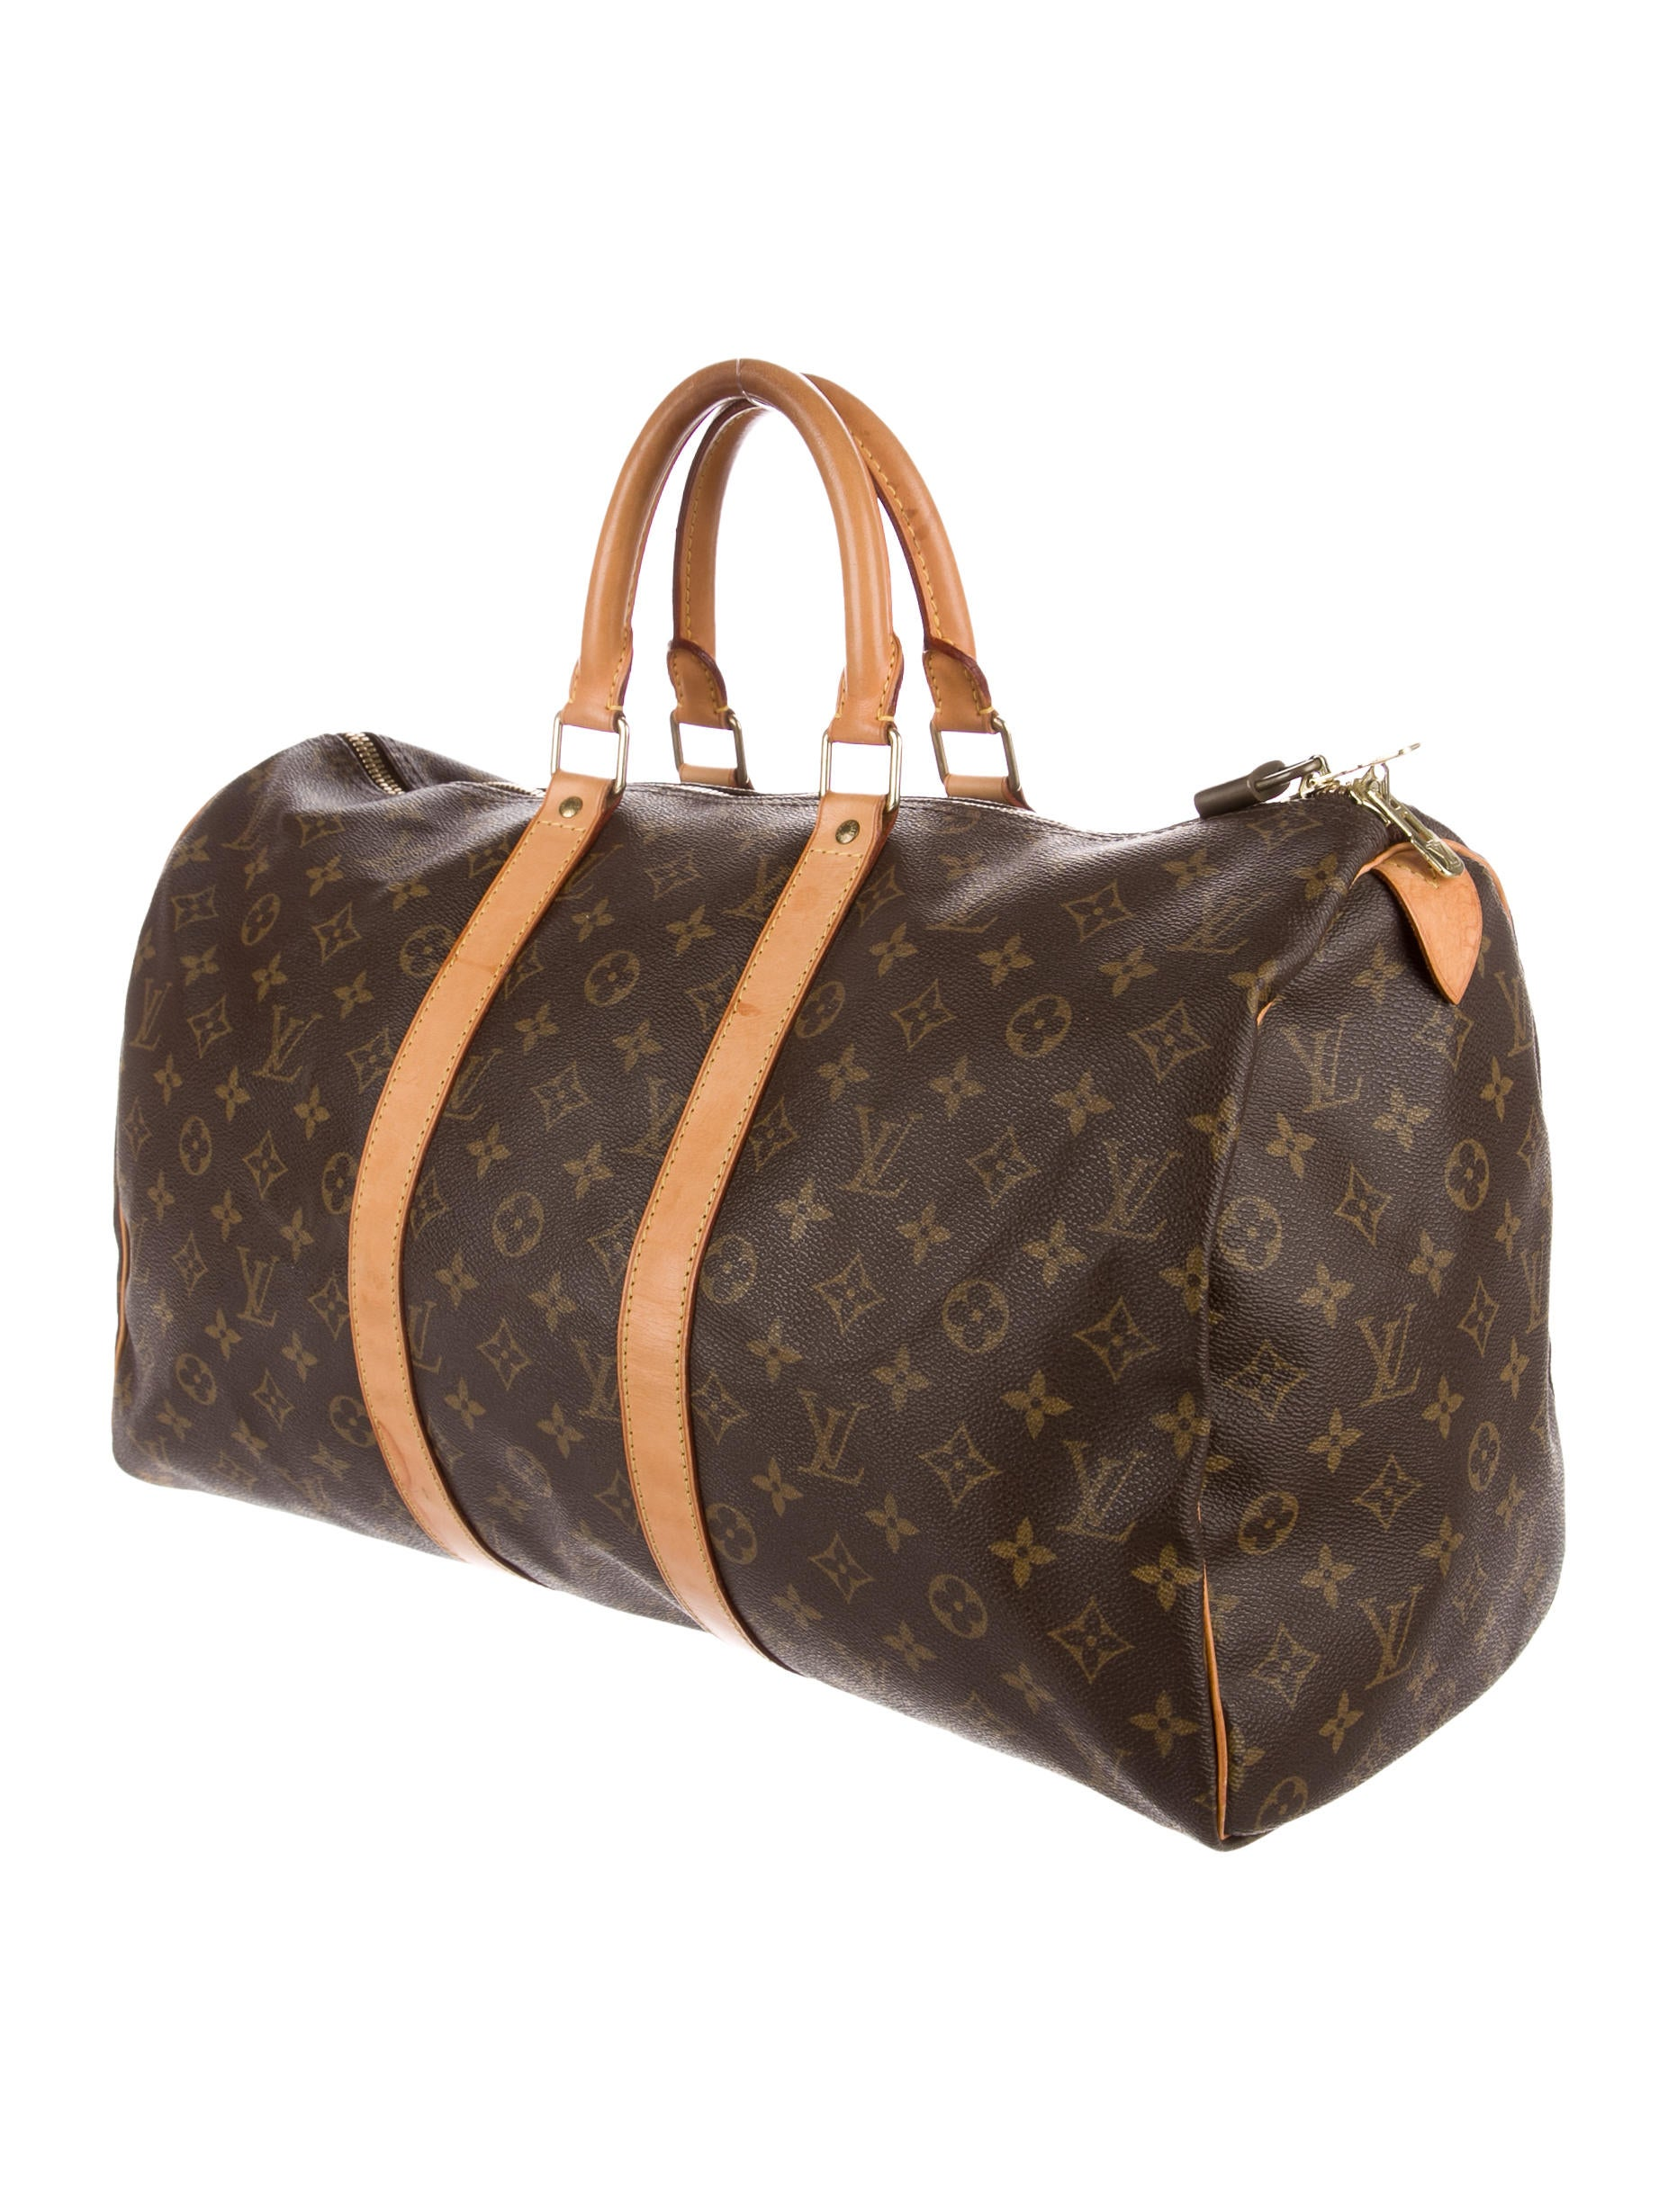 louis vuitton monogram keepall 45 handbags lou134020 the realreal. Black Bedroom Furniture Sets. Home Design Ideas